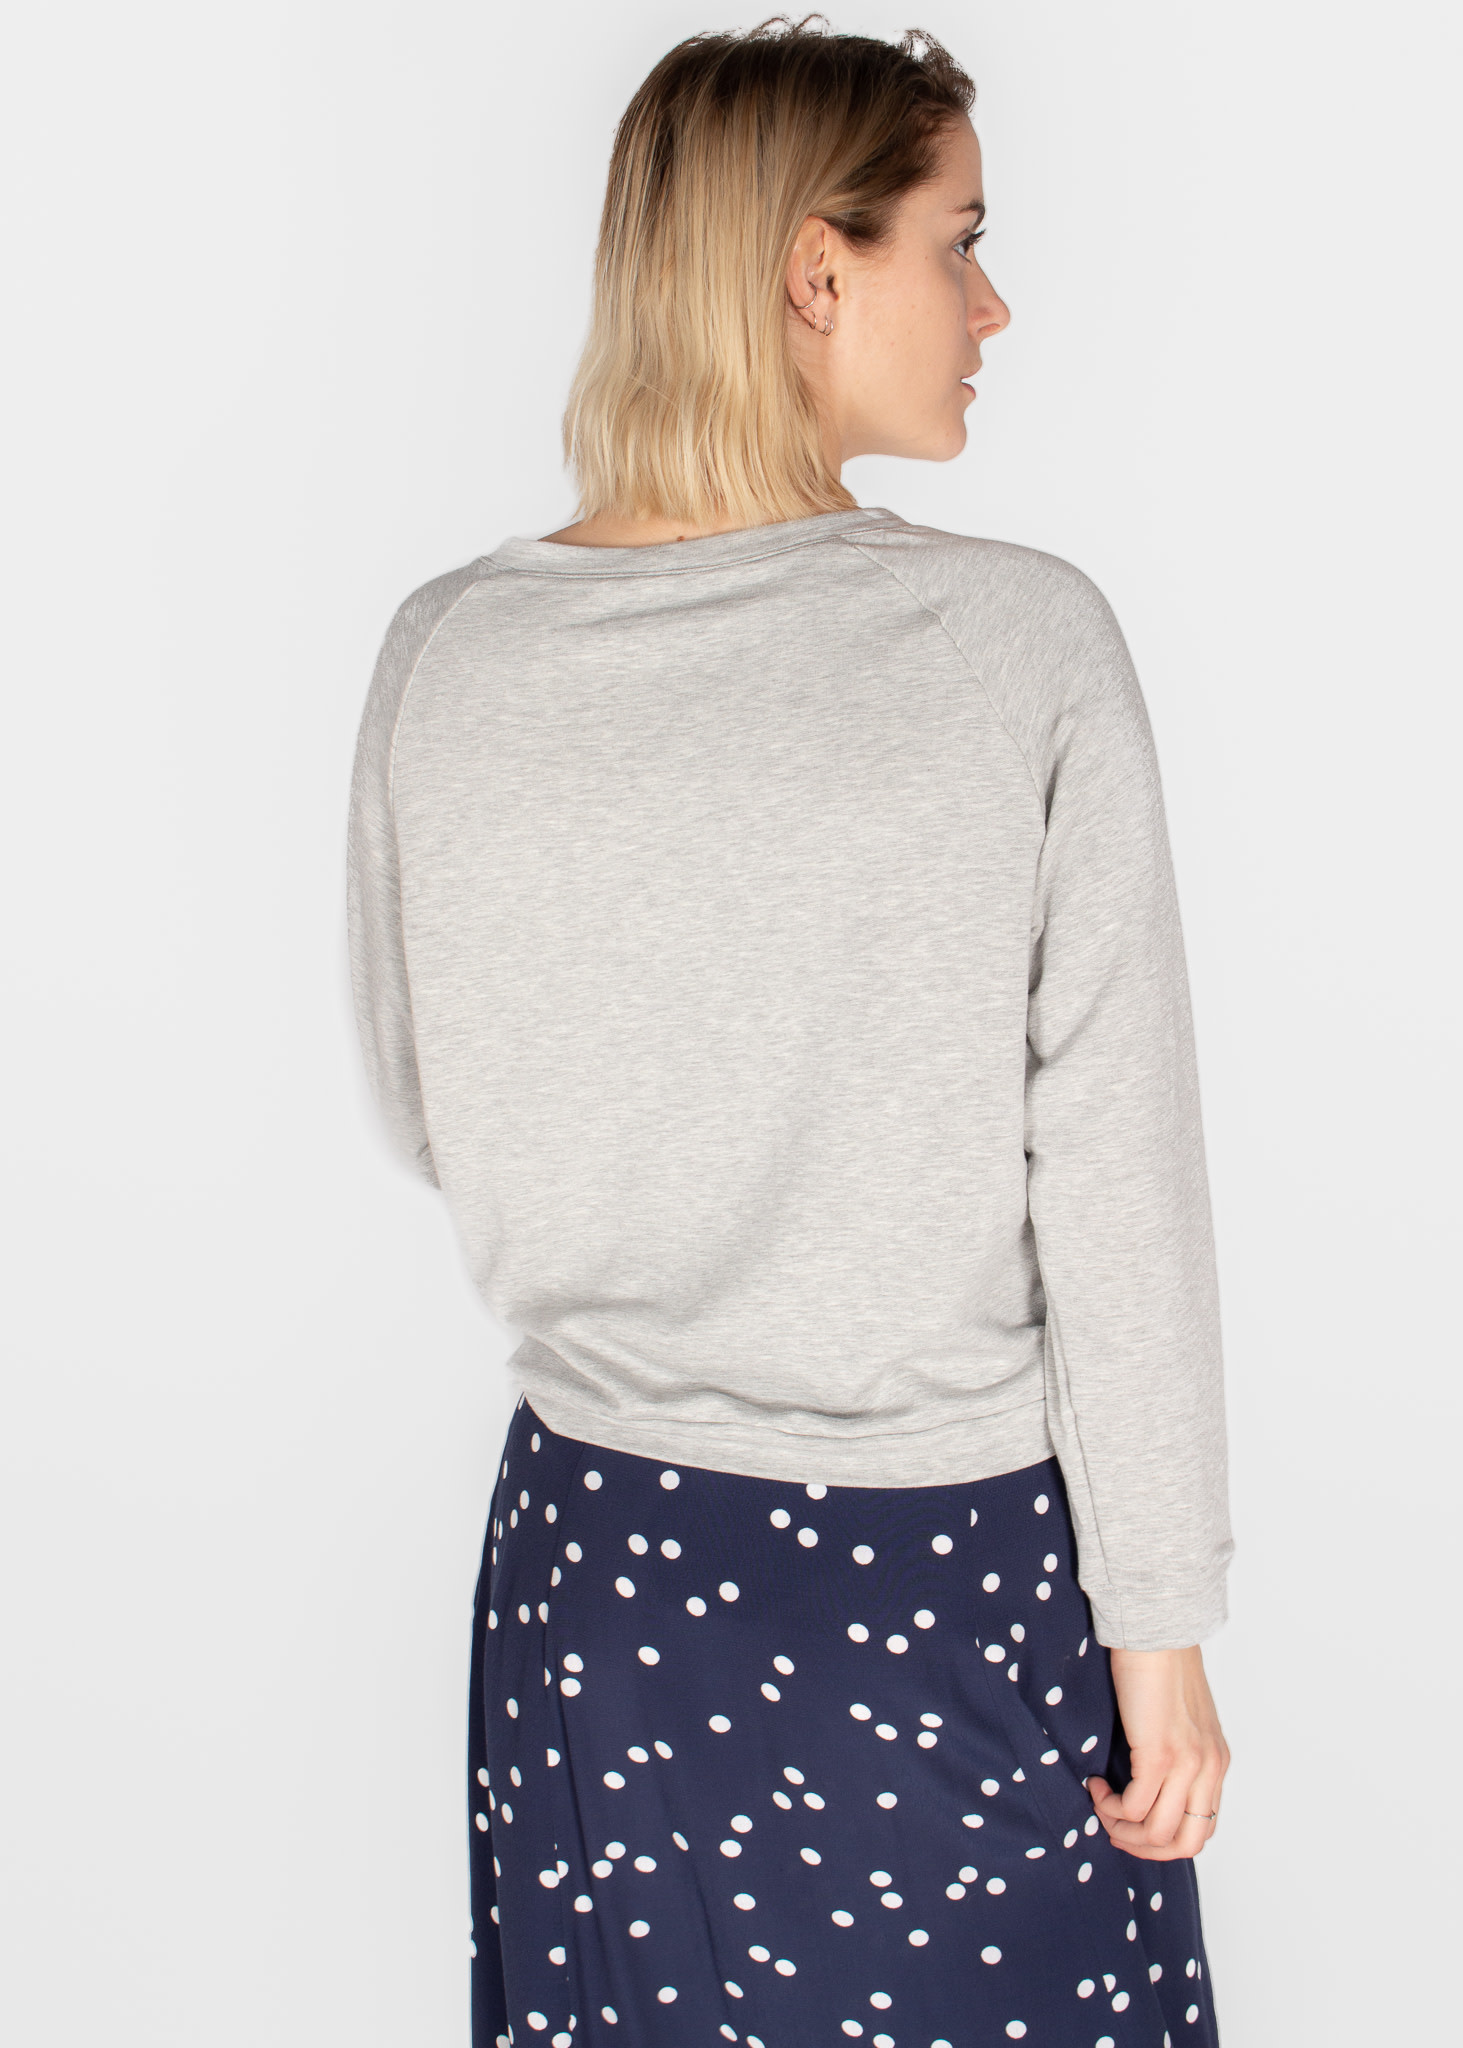 EDLYN ATHLEISURE PULLOVER SWEATER